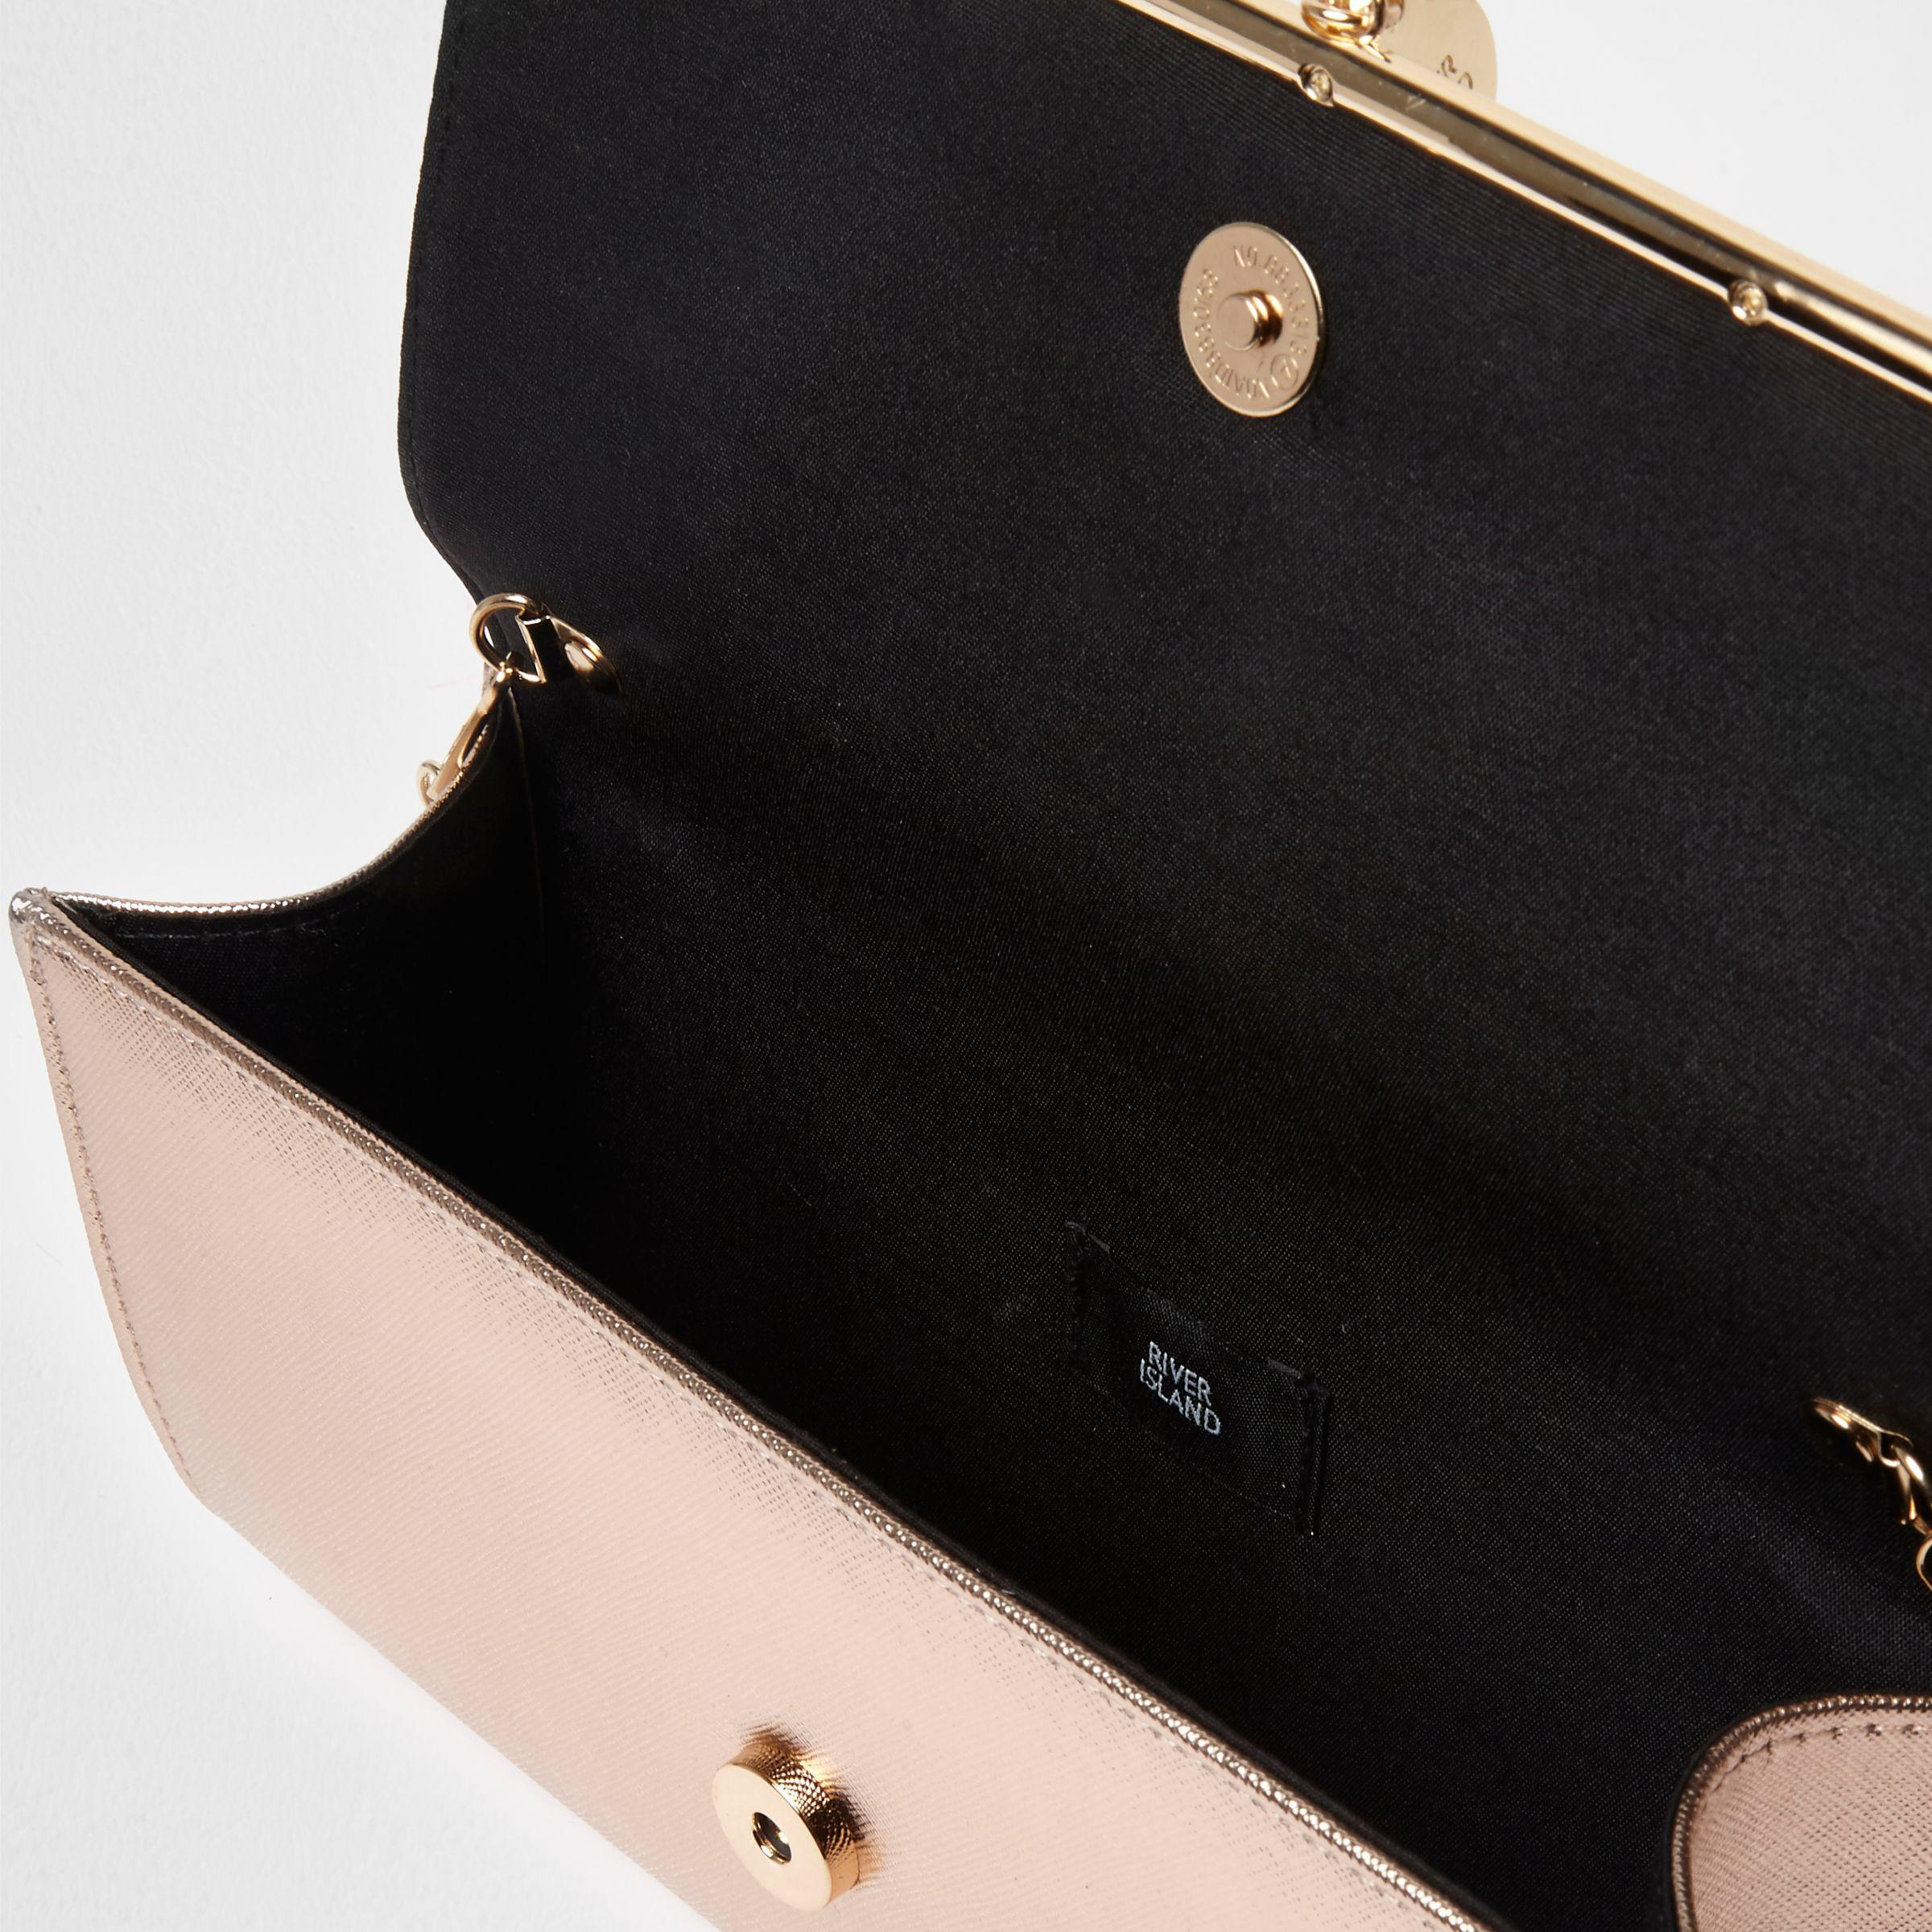 River Island Rose Gold Bar Front Foldover Clutch Bag In